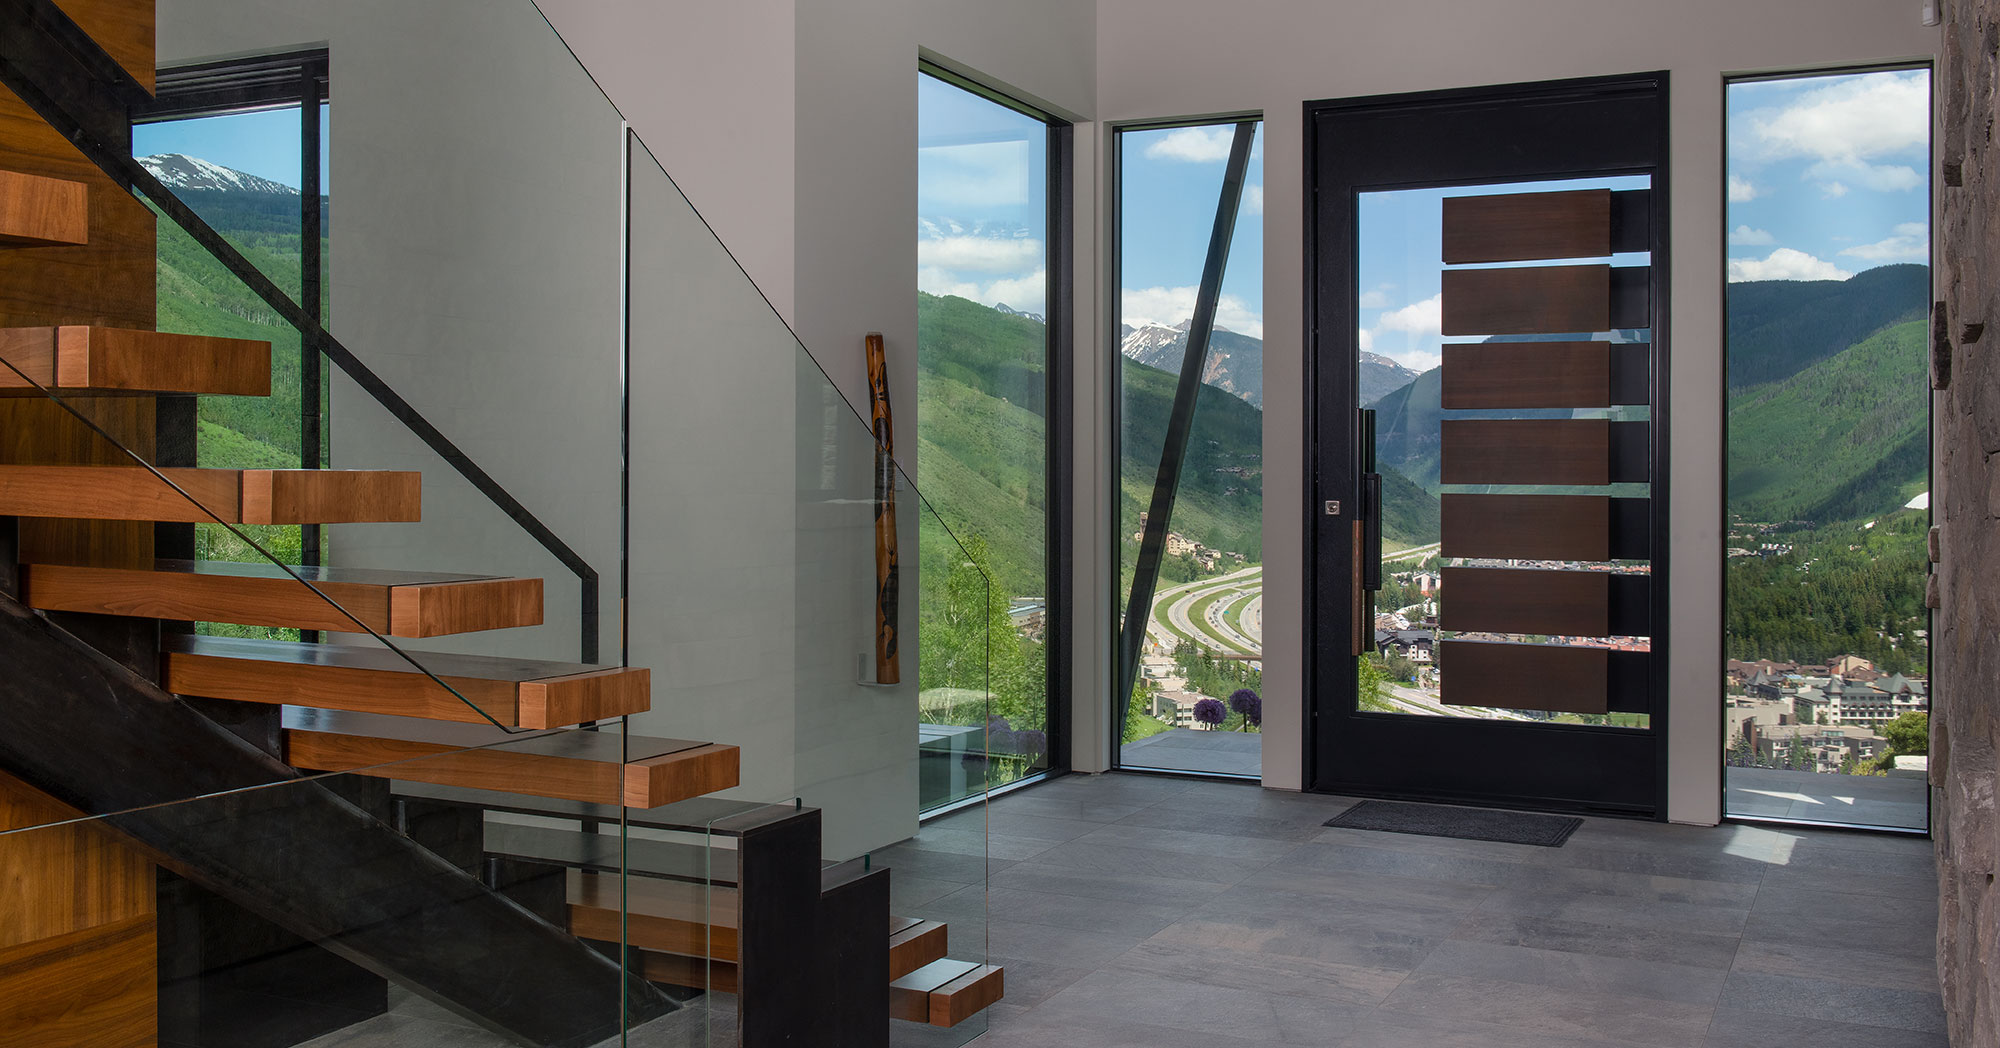 Entryway to Vail Village and Vail Mountain Views